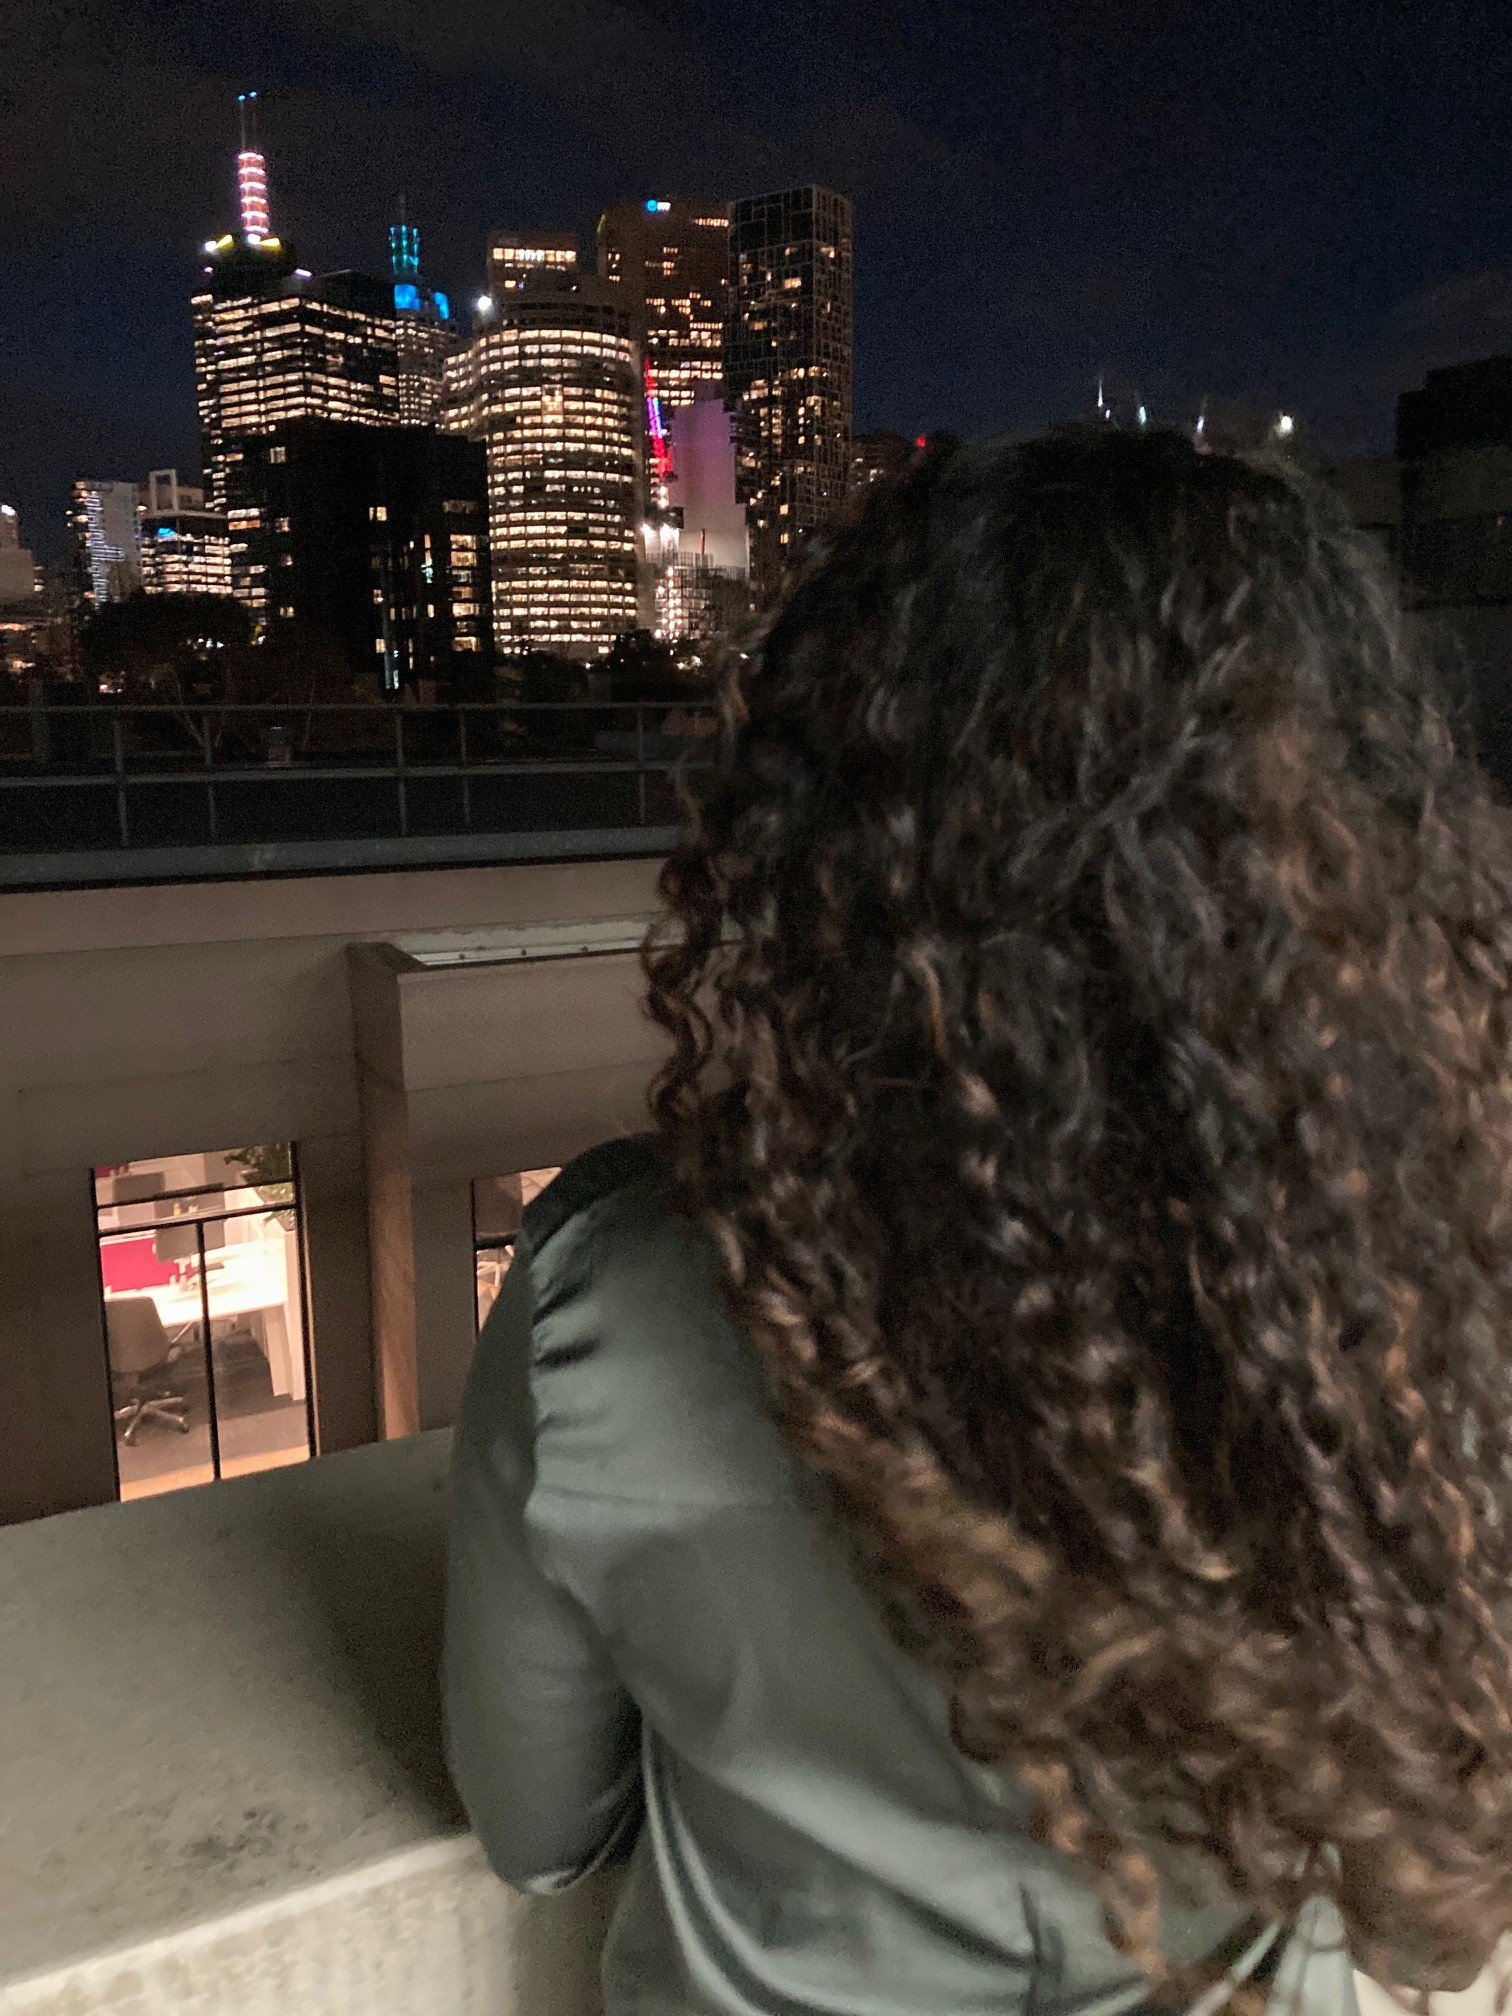 The back of a woman's head as she looks at the skyline of the city at night.